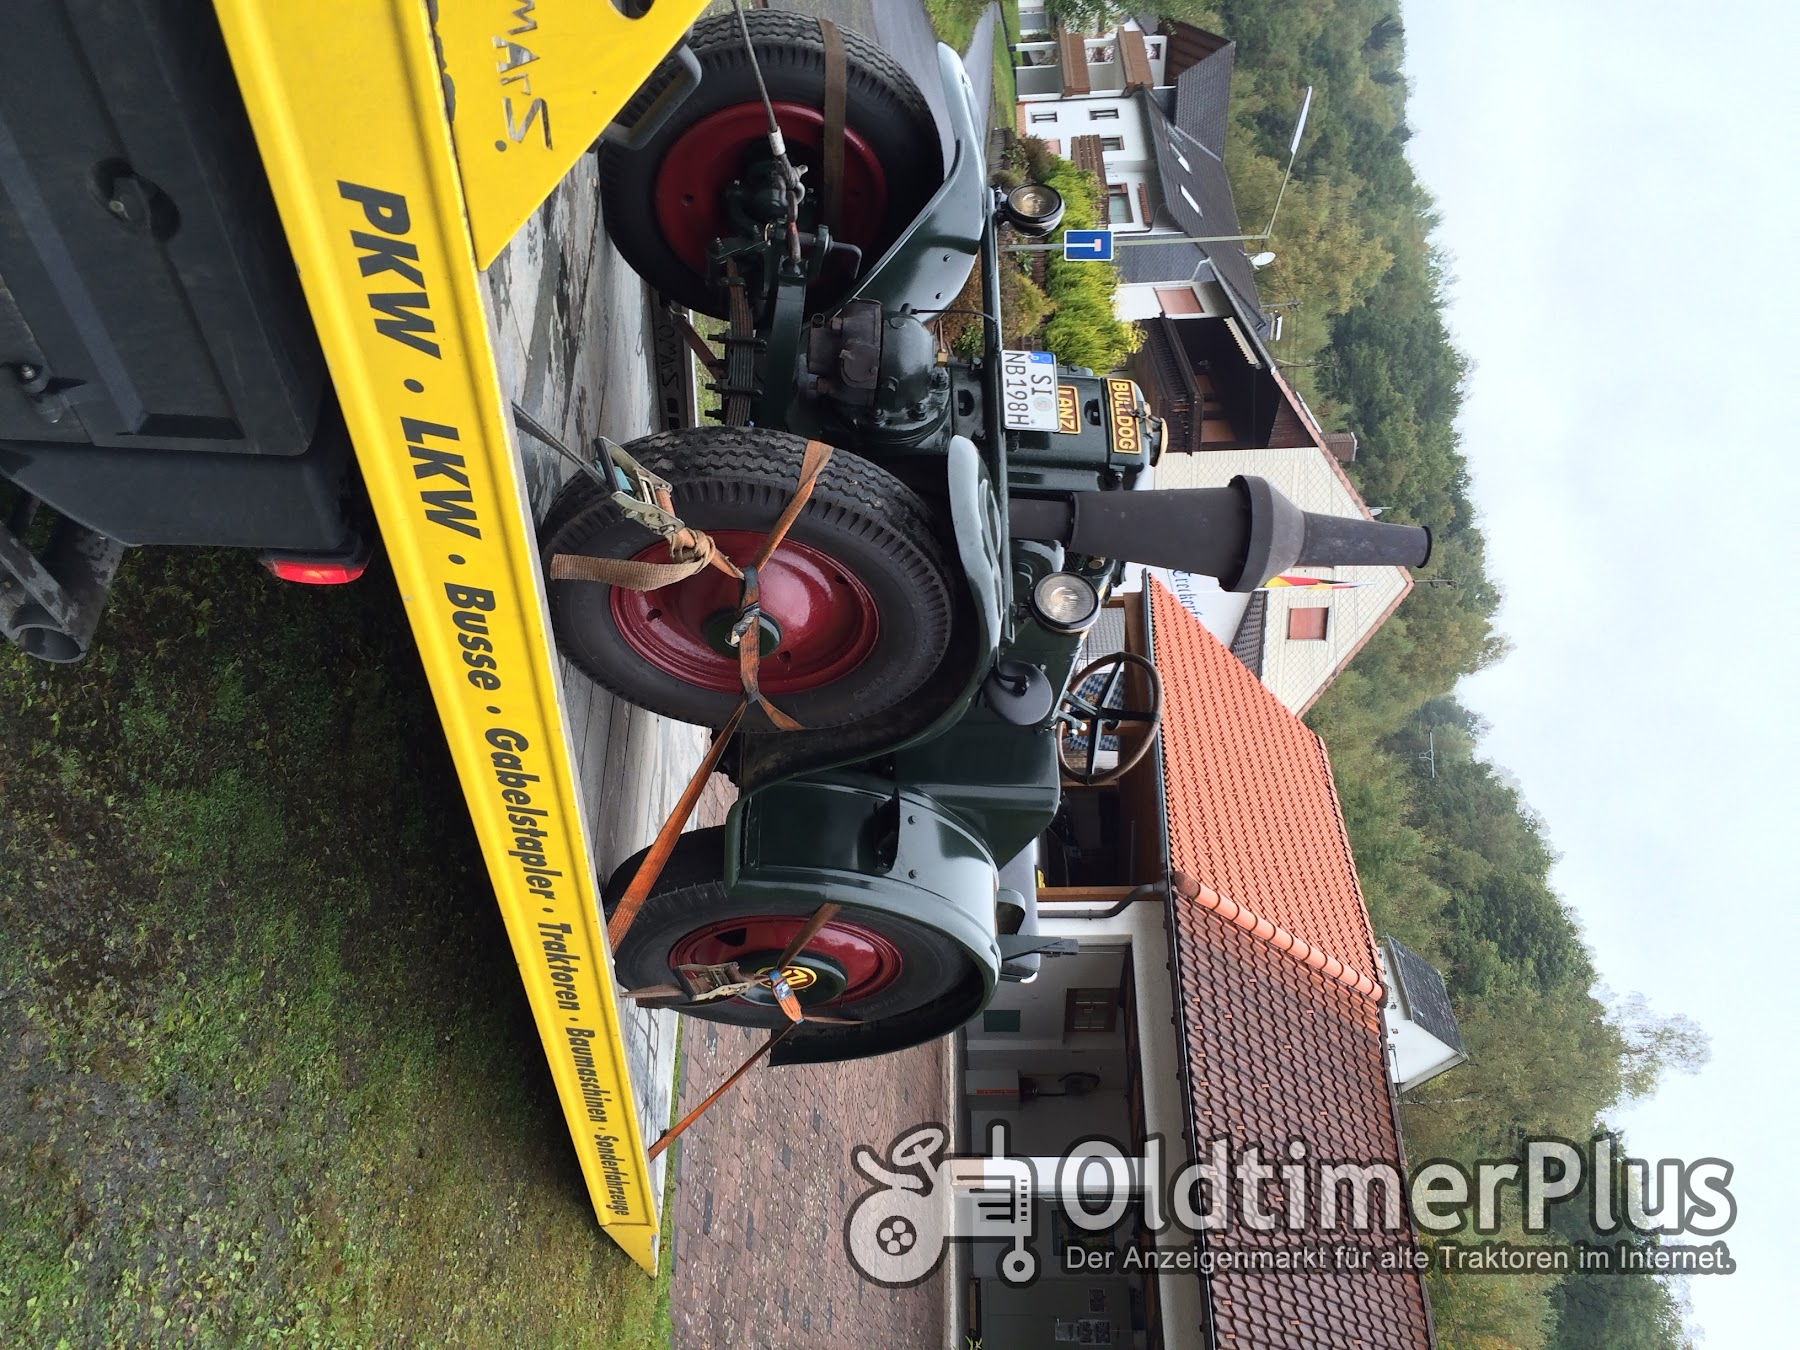 Traktortransporte Treckertransporte , Lanz Bulldog , Eicher , Porsche , Hanomag , IHC , Fendt , Deutz , Eicher Foto 3